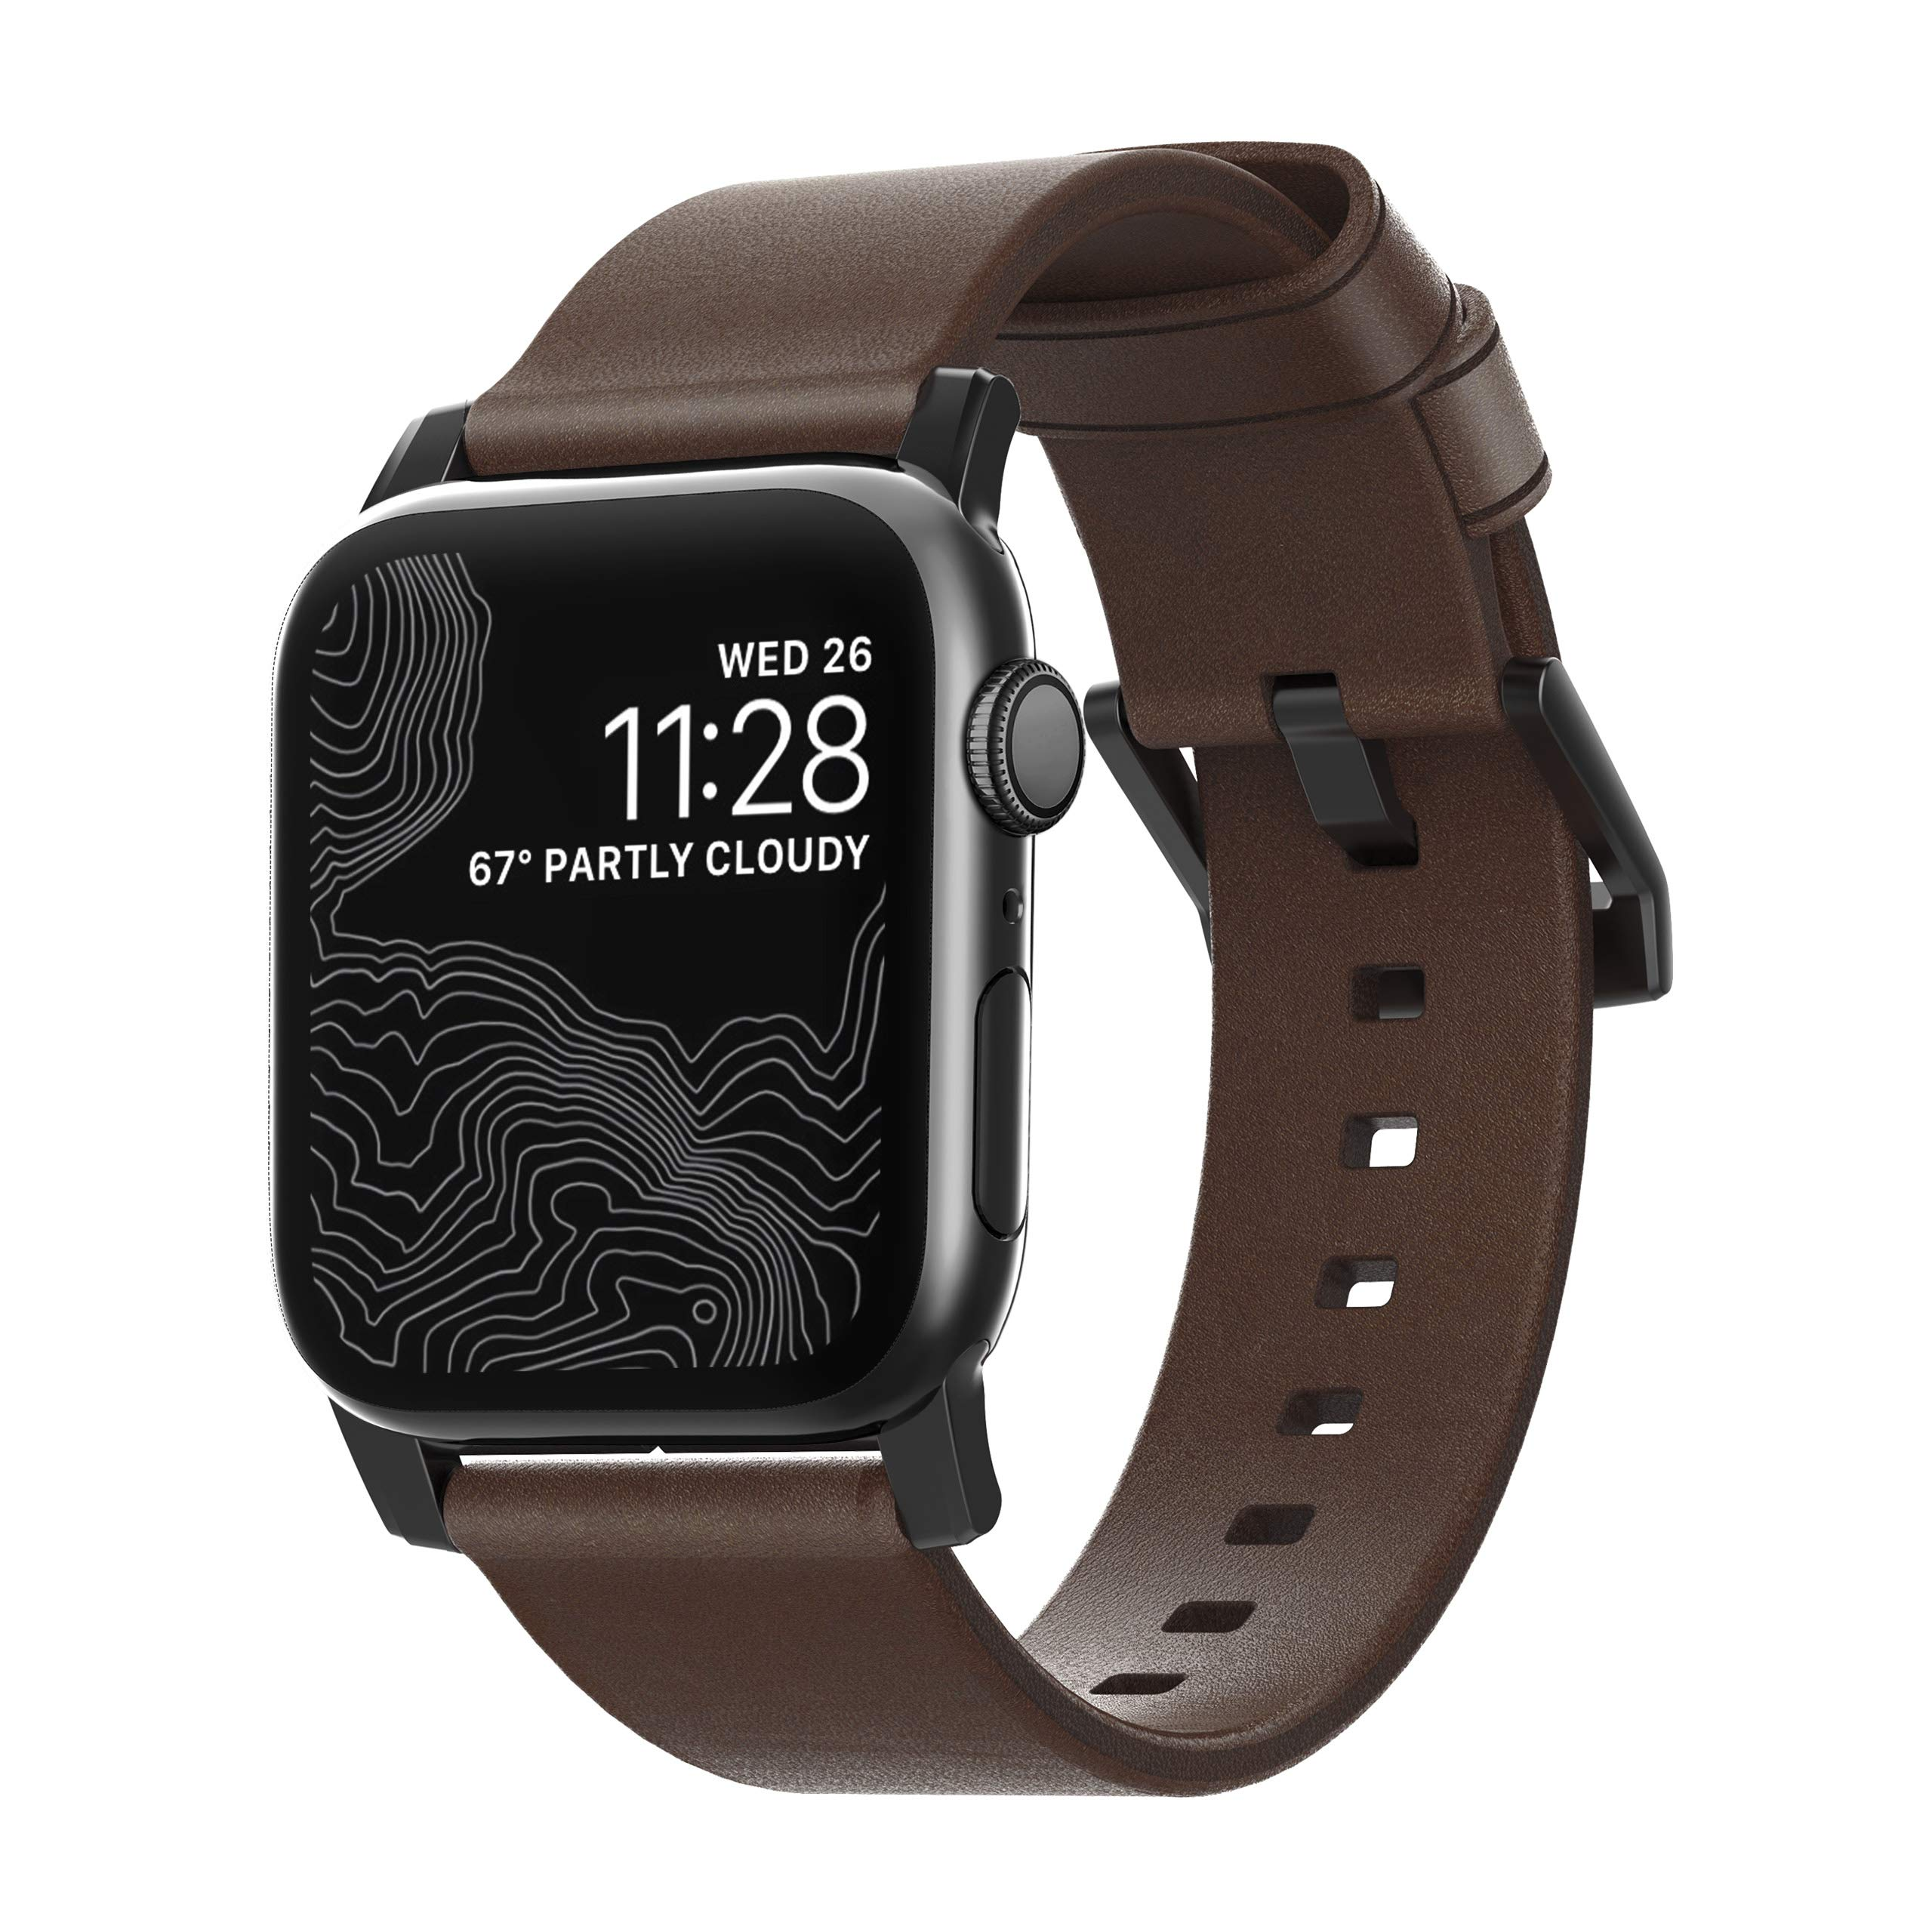 Nomad Modern Strap for Apple Watch 44mm/42mm | Rustic Brown Horween Leather | Black Hardware by Nomad (Image #1)